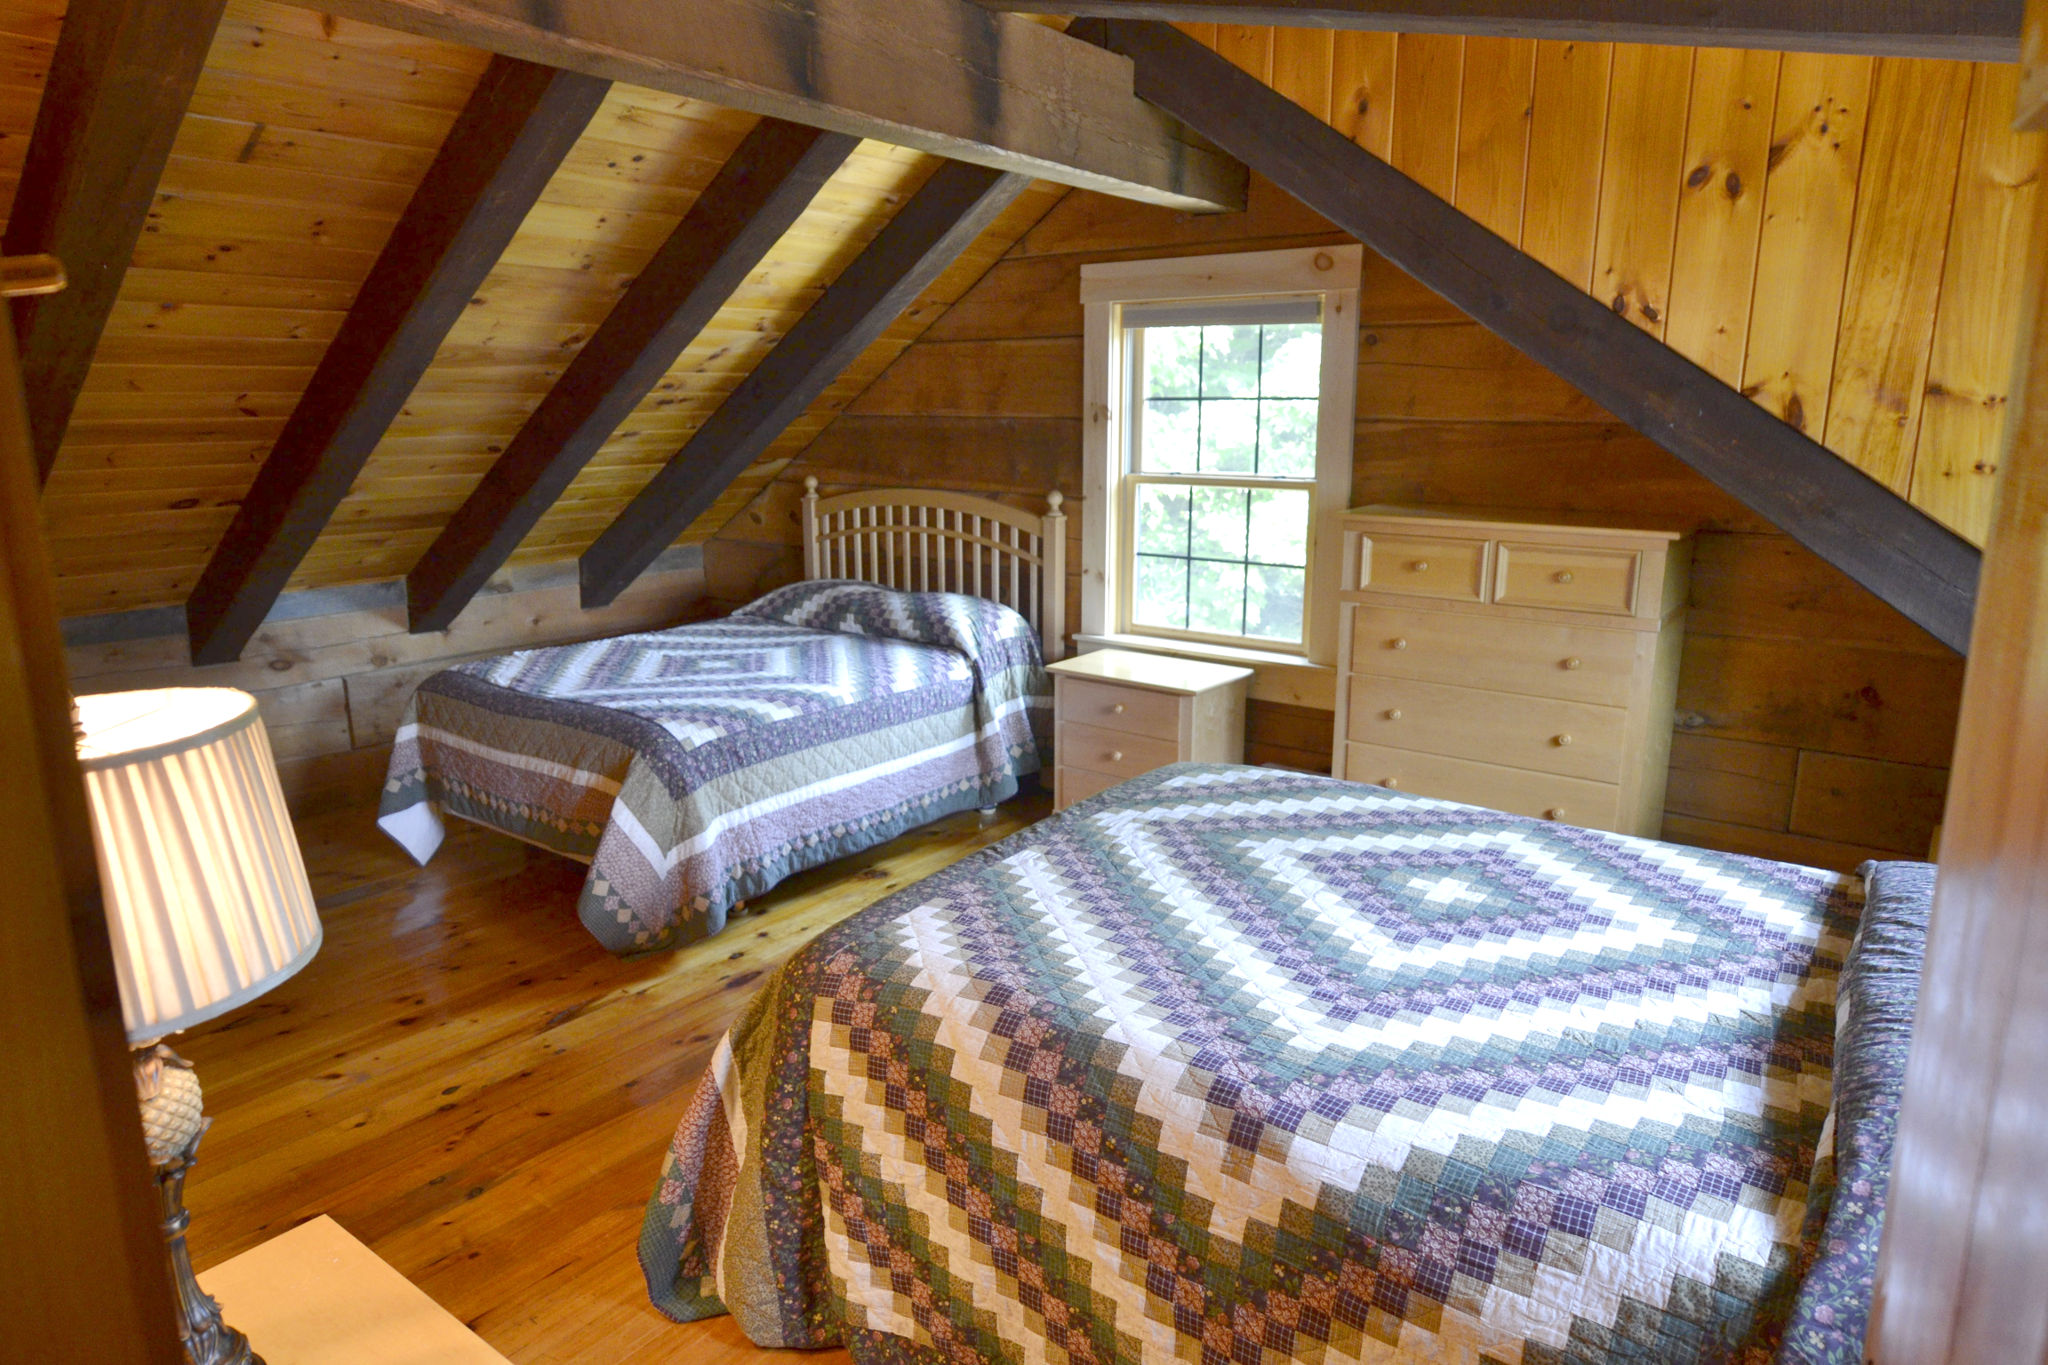 Second bedroom (2 beds)